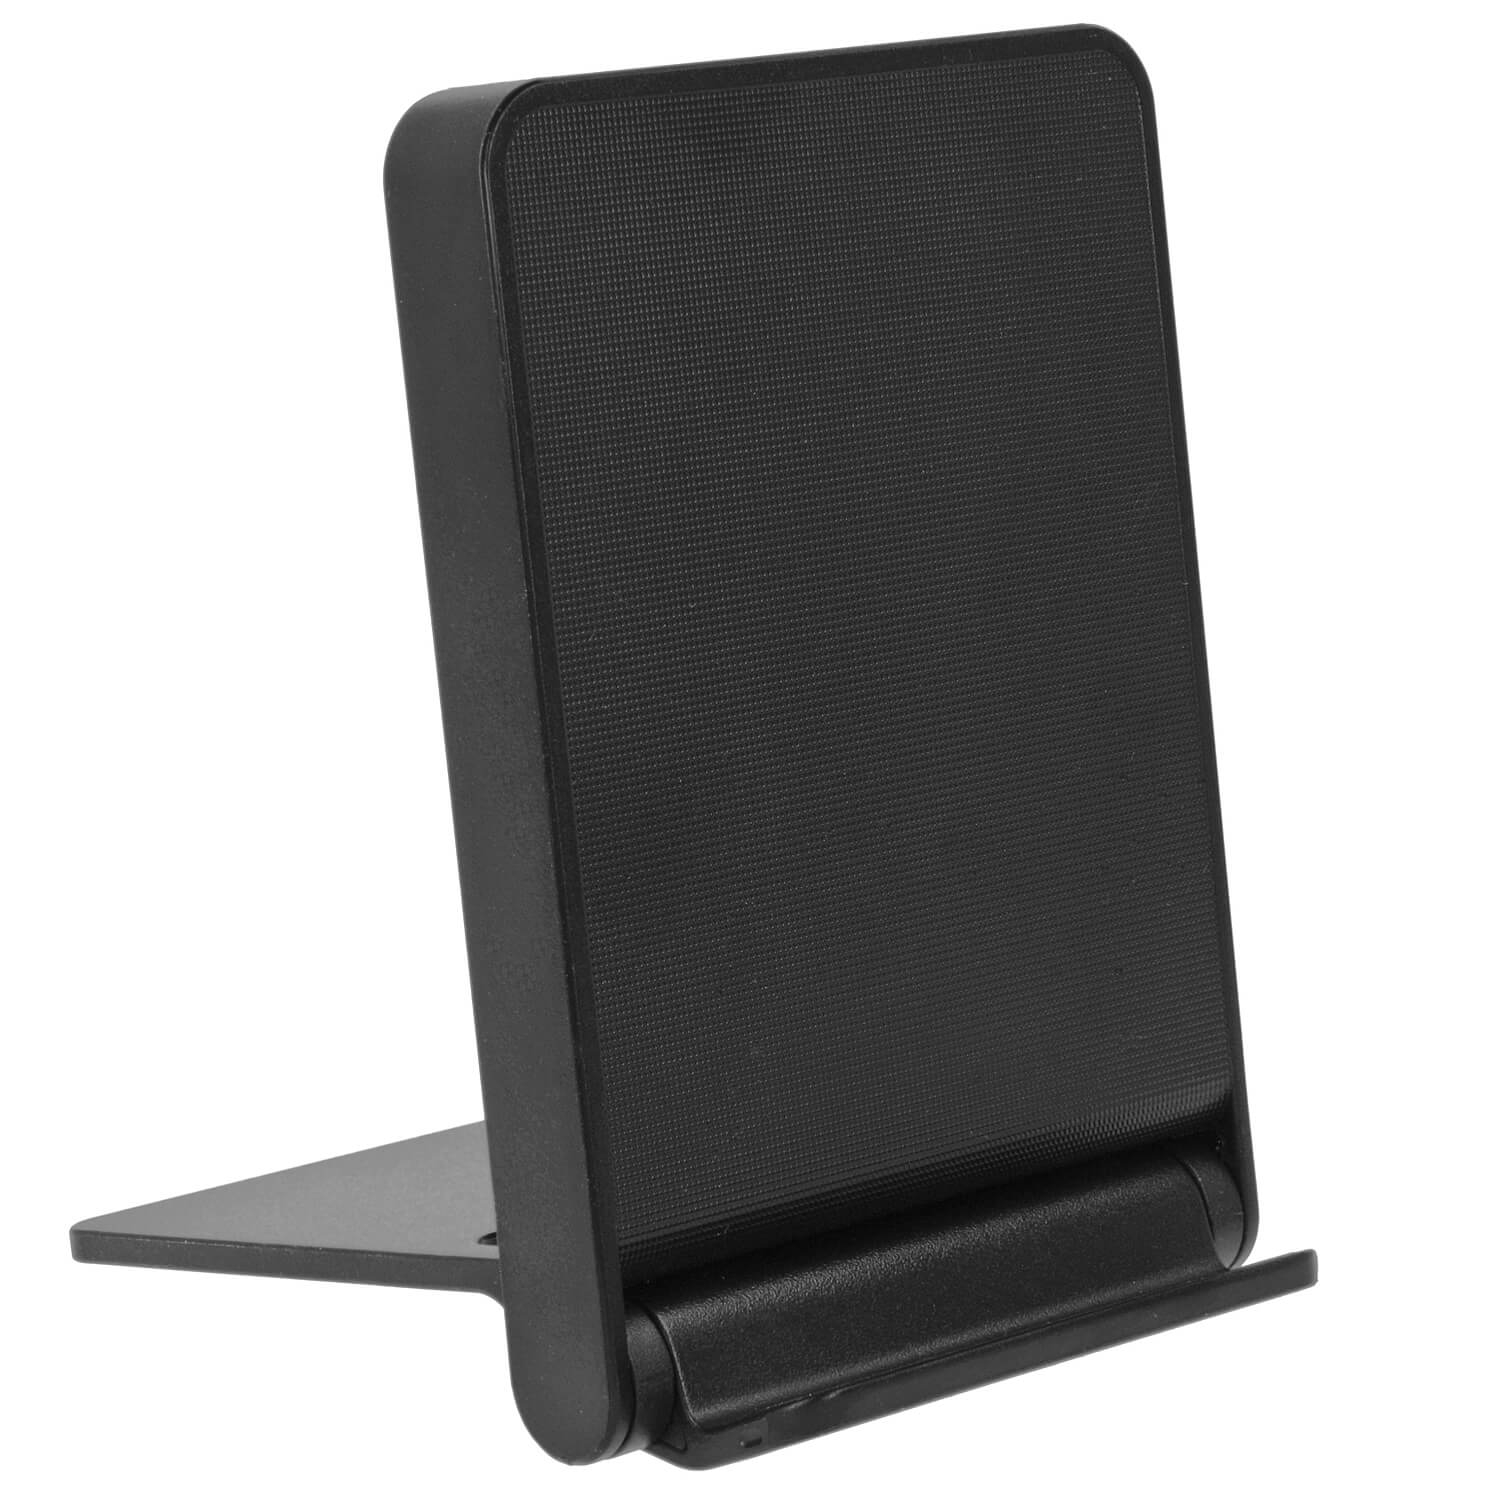 LG Inductive Charger WCD-110 (black)